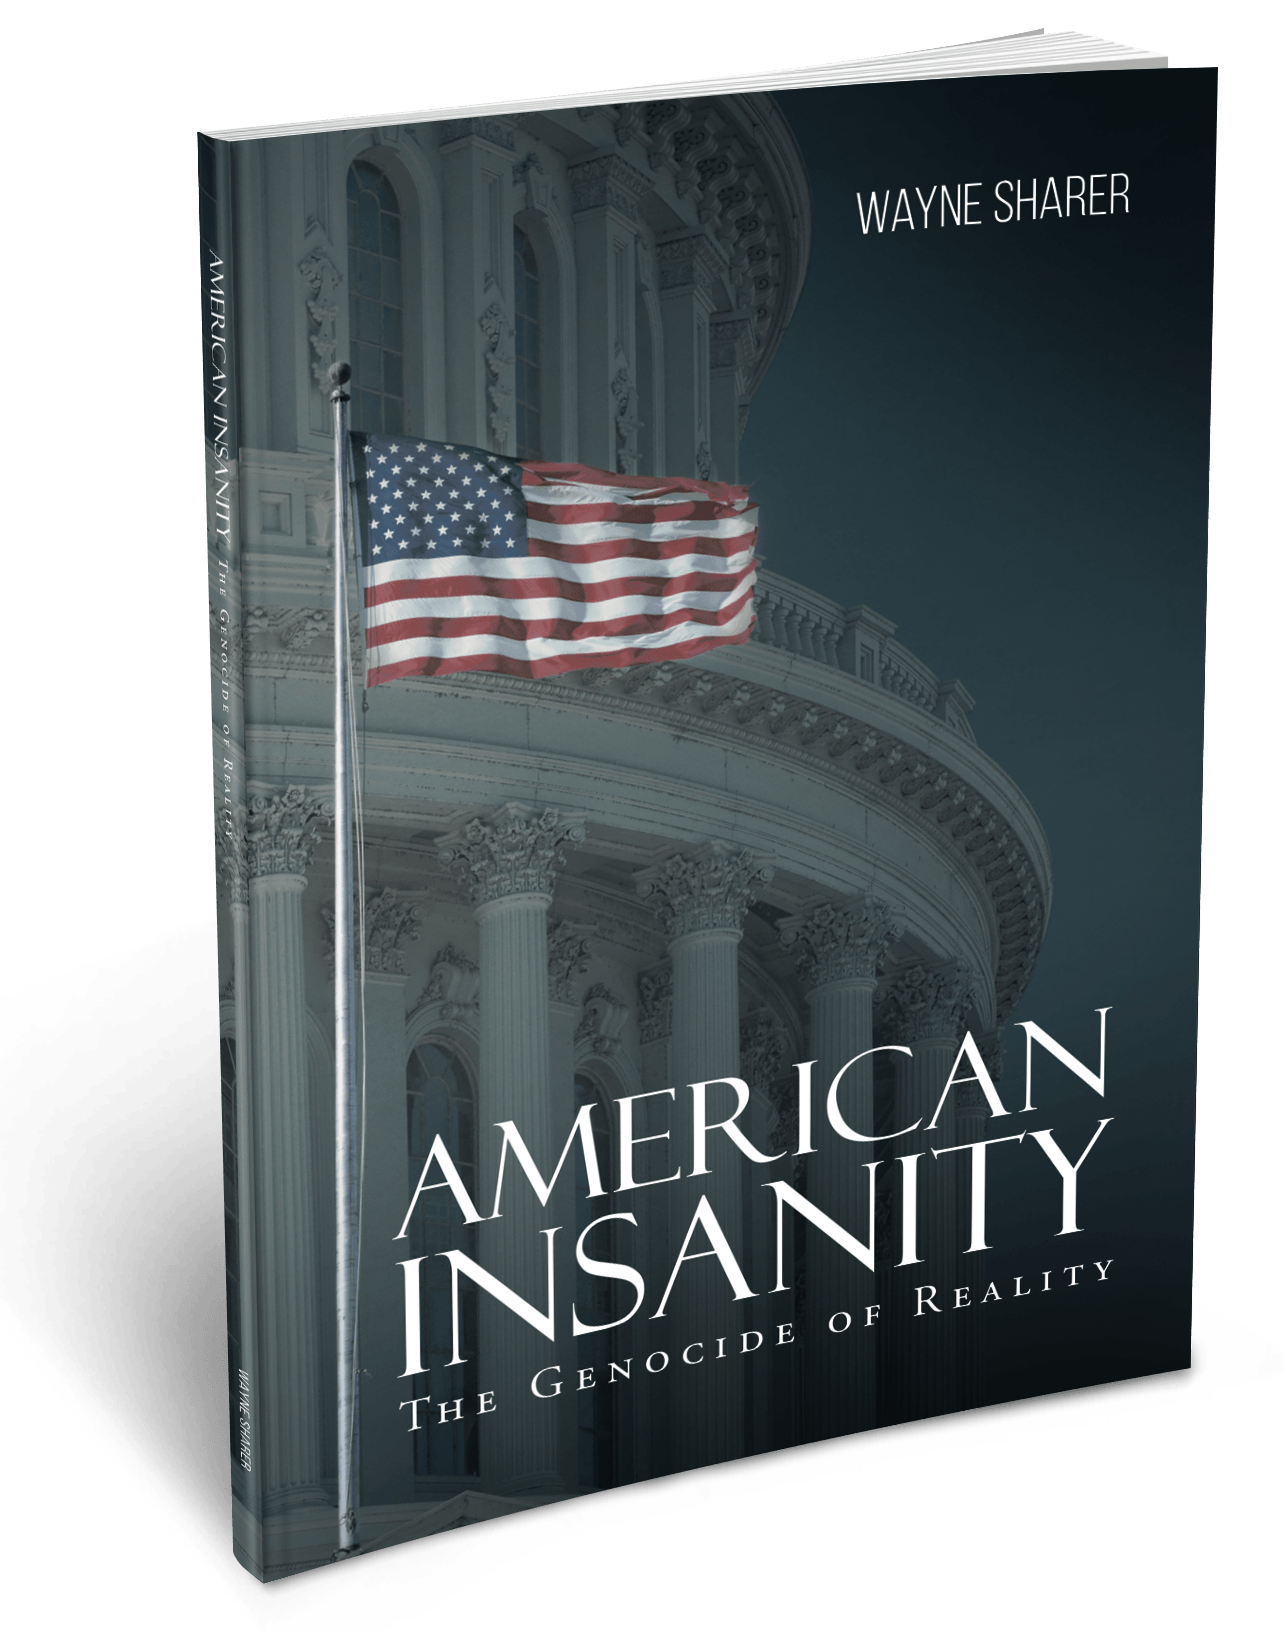 American Insanity: The Genocide of Reality by Wayne Sharer